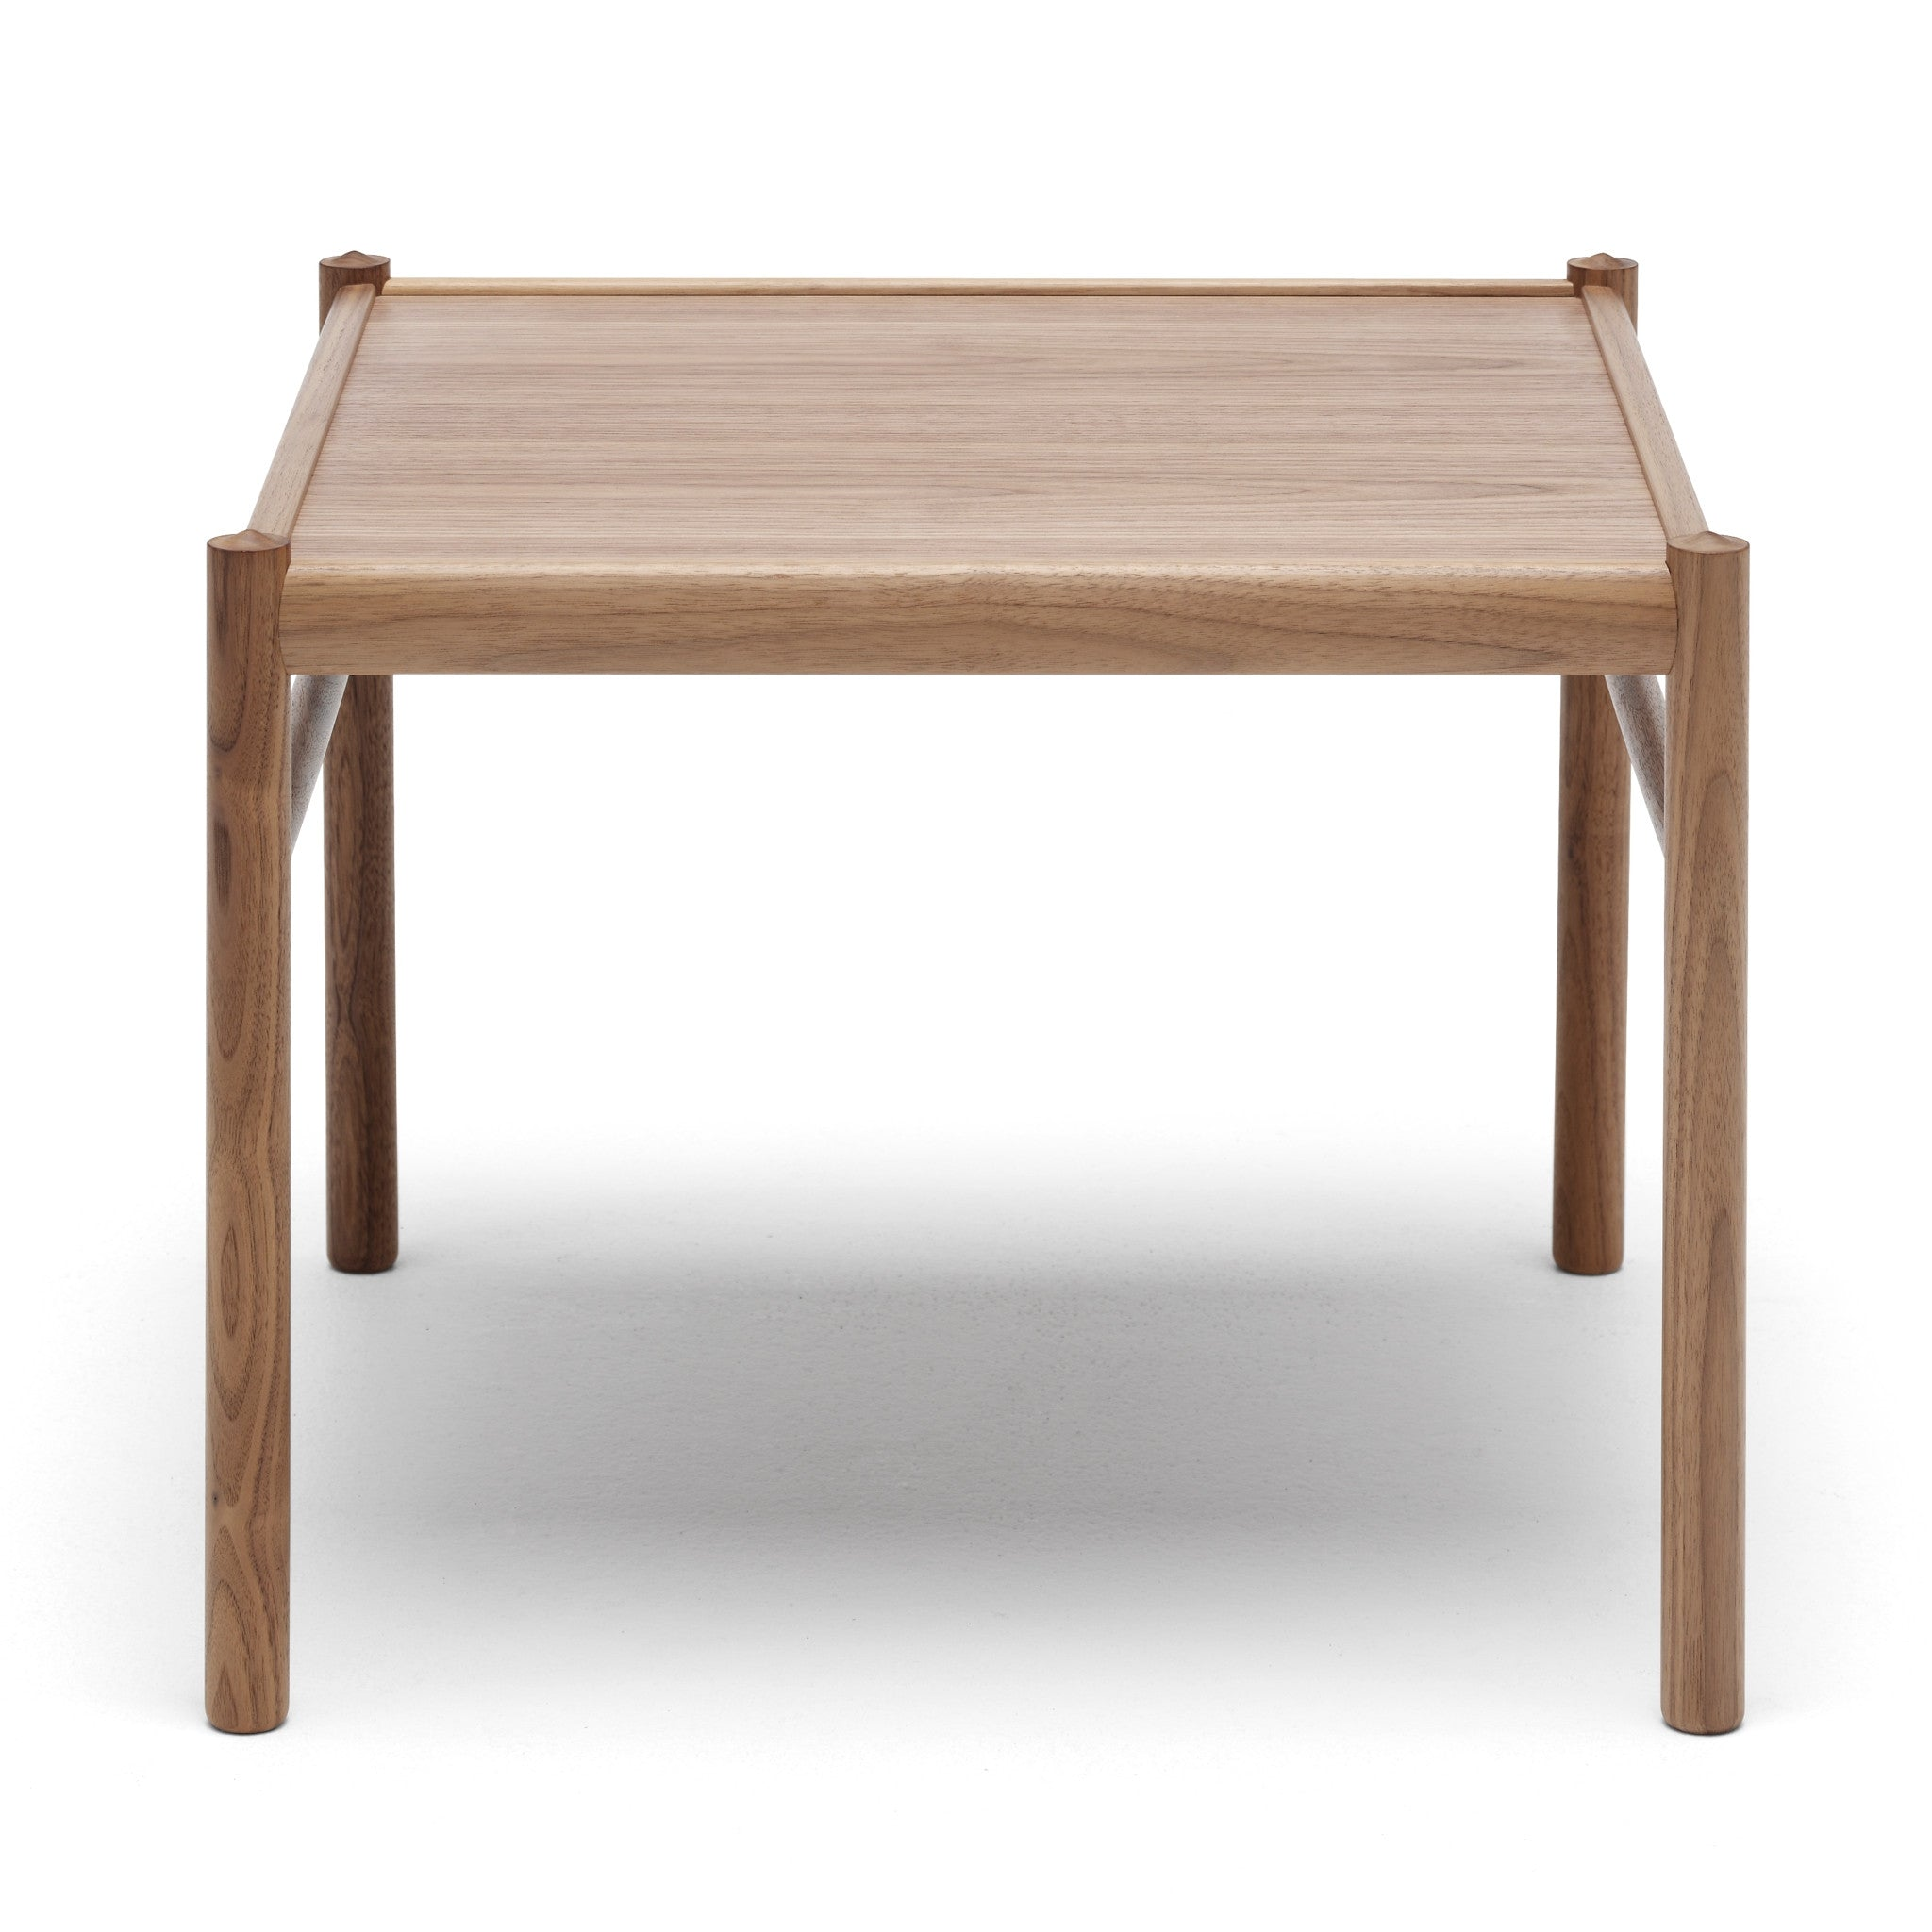 OW449 Colonial Coffee Table by Carl Hansen & Søn - haus®